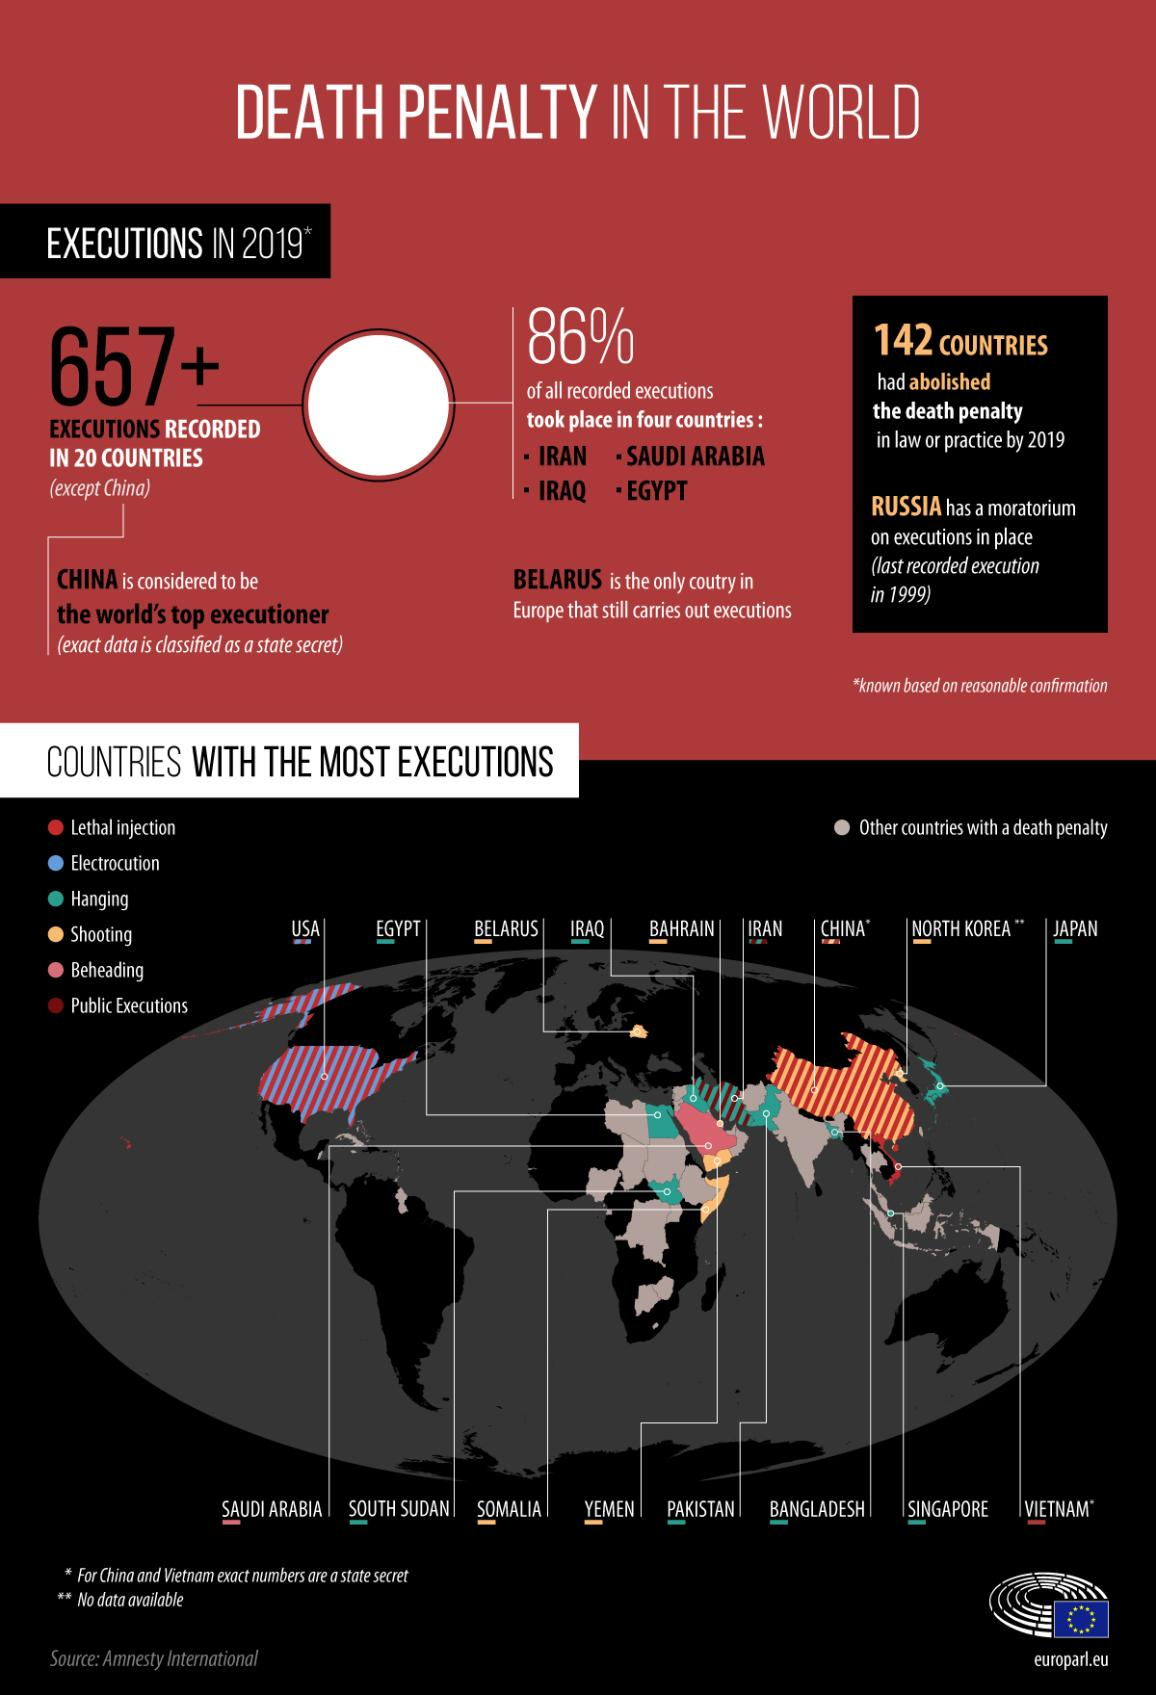 Infographic with fact and figures on death penalty in the world in 2019 and a map of countries with the most executions